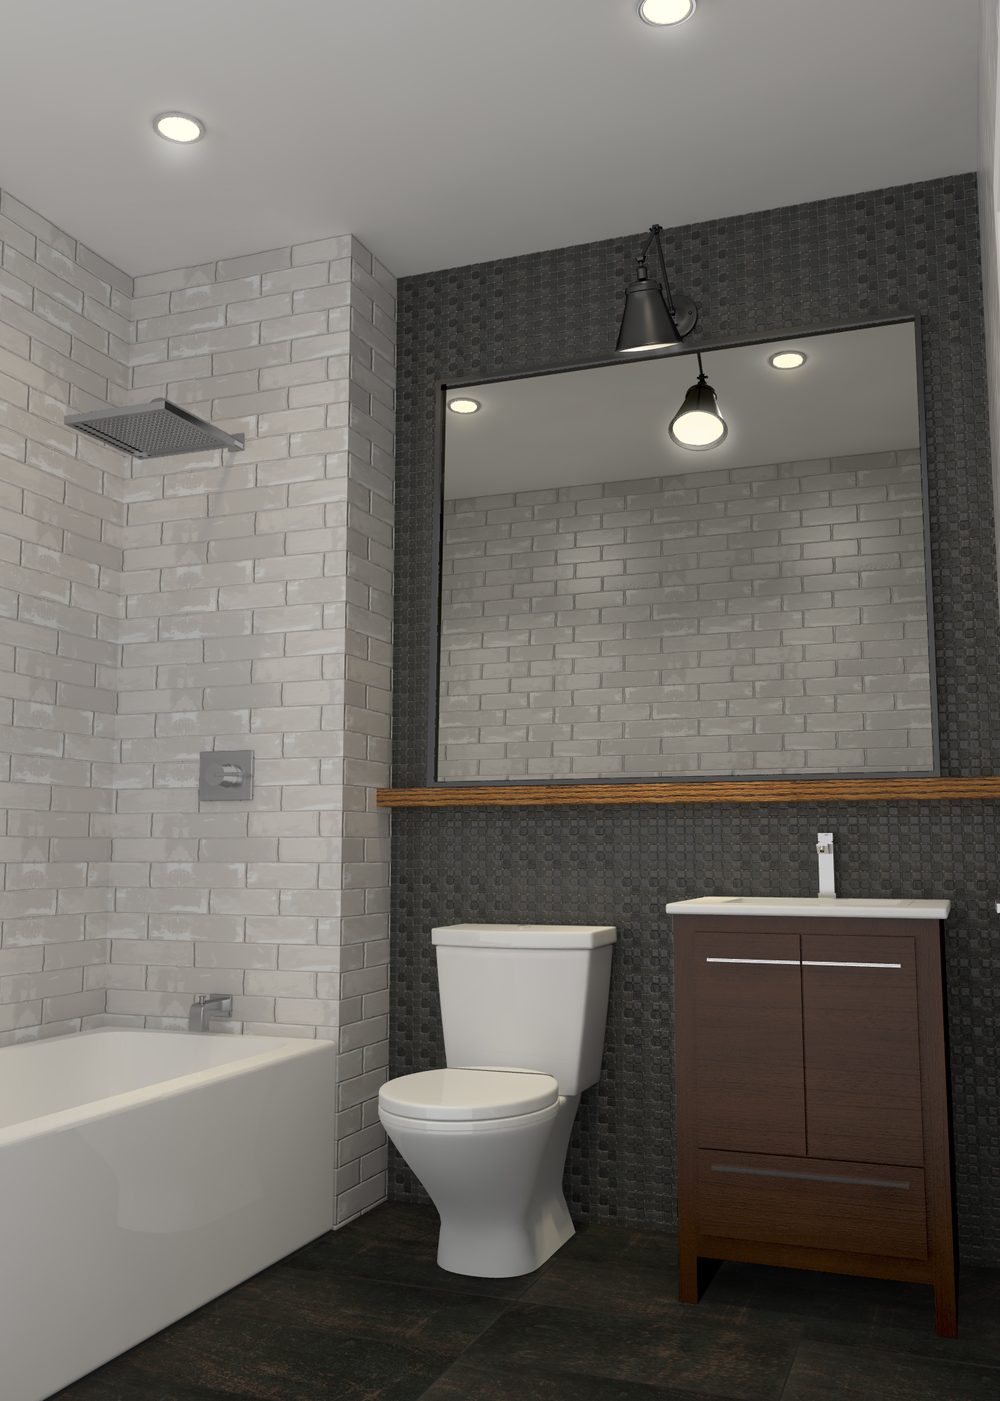 434 Manhattan - Bathroom Rendering - VIEW3.jpg